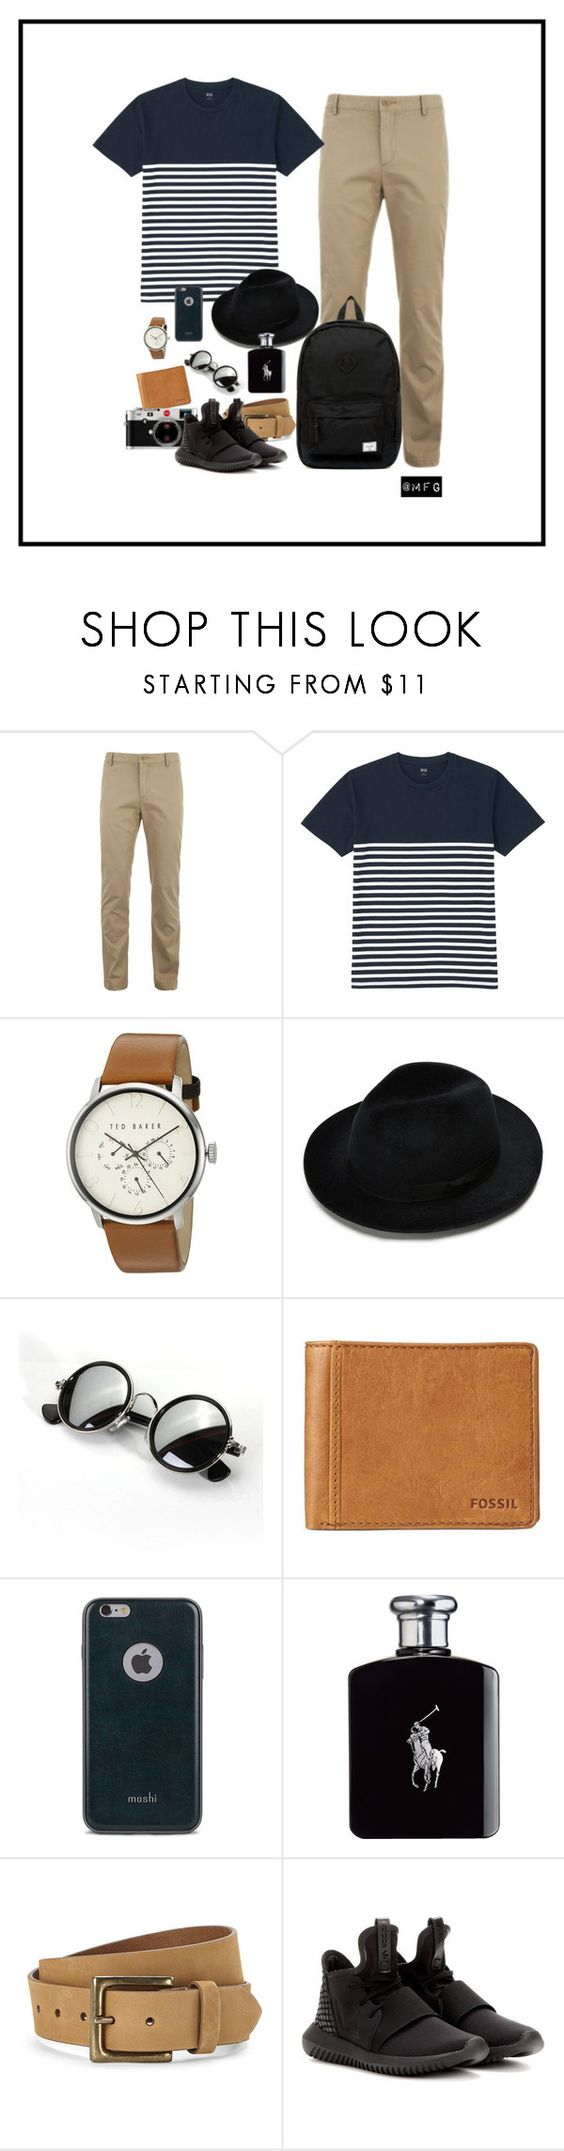 Cassual by farhanoid on Polyvore featuring Uniqlo, Lacoste, Ted Baker, Herschel Supply Co., FOSSIL, Timberland, Moshi, Ralph Lauren, adidas and Leica